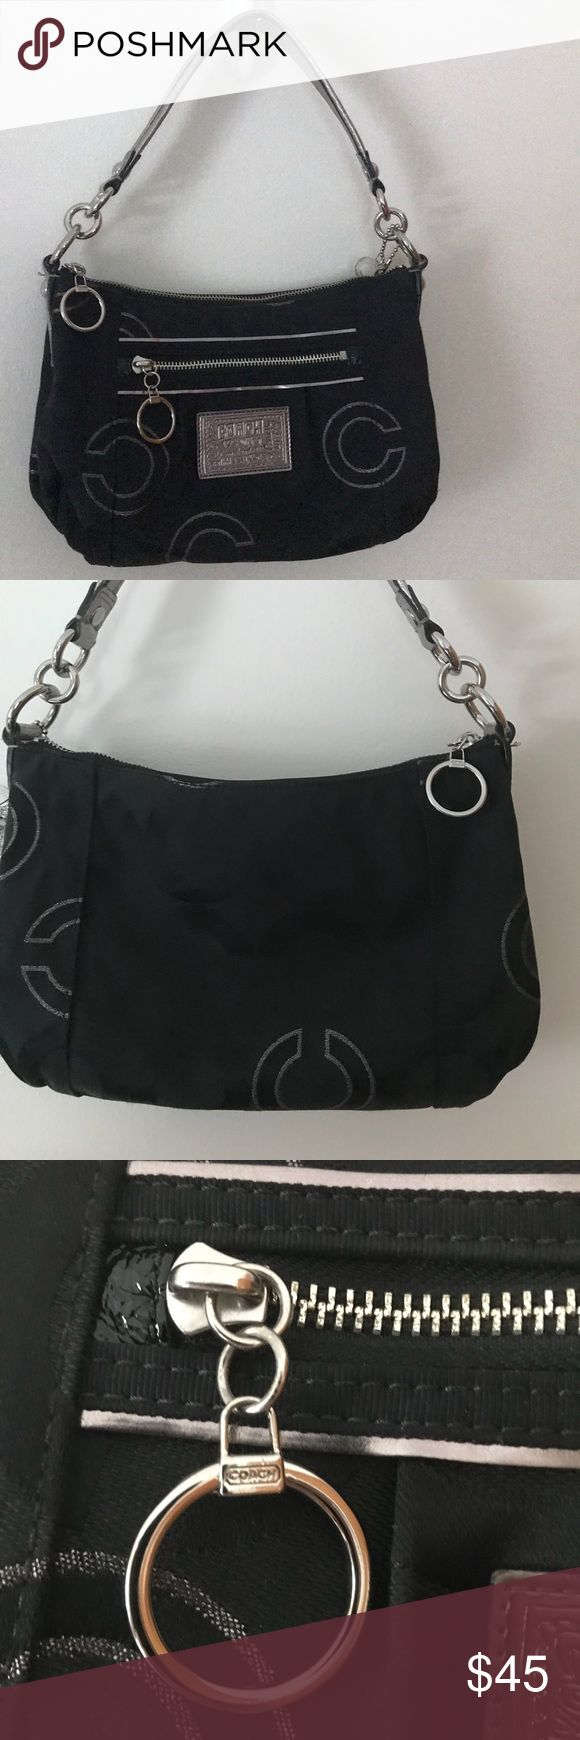 Coach pocketbook 💯COACH💯  Coach Poppy pocket book  Original key chains  Black and silver   Silver leather lined strap  Black interior Coach Bags Mini Bags